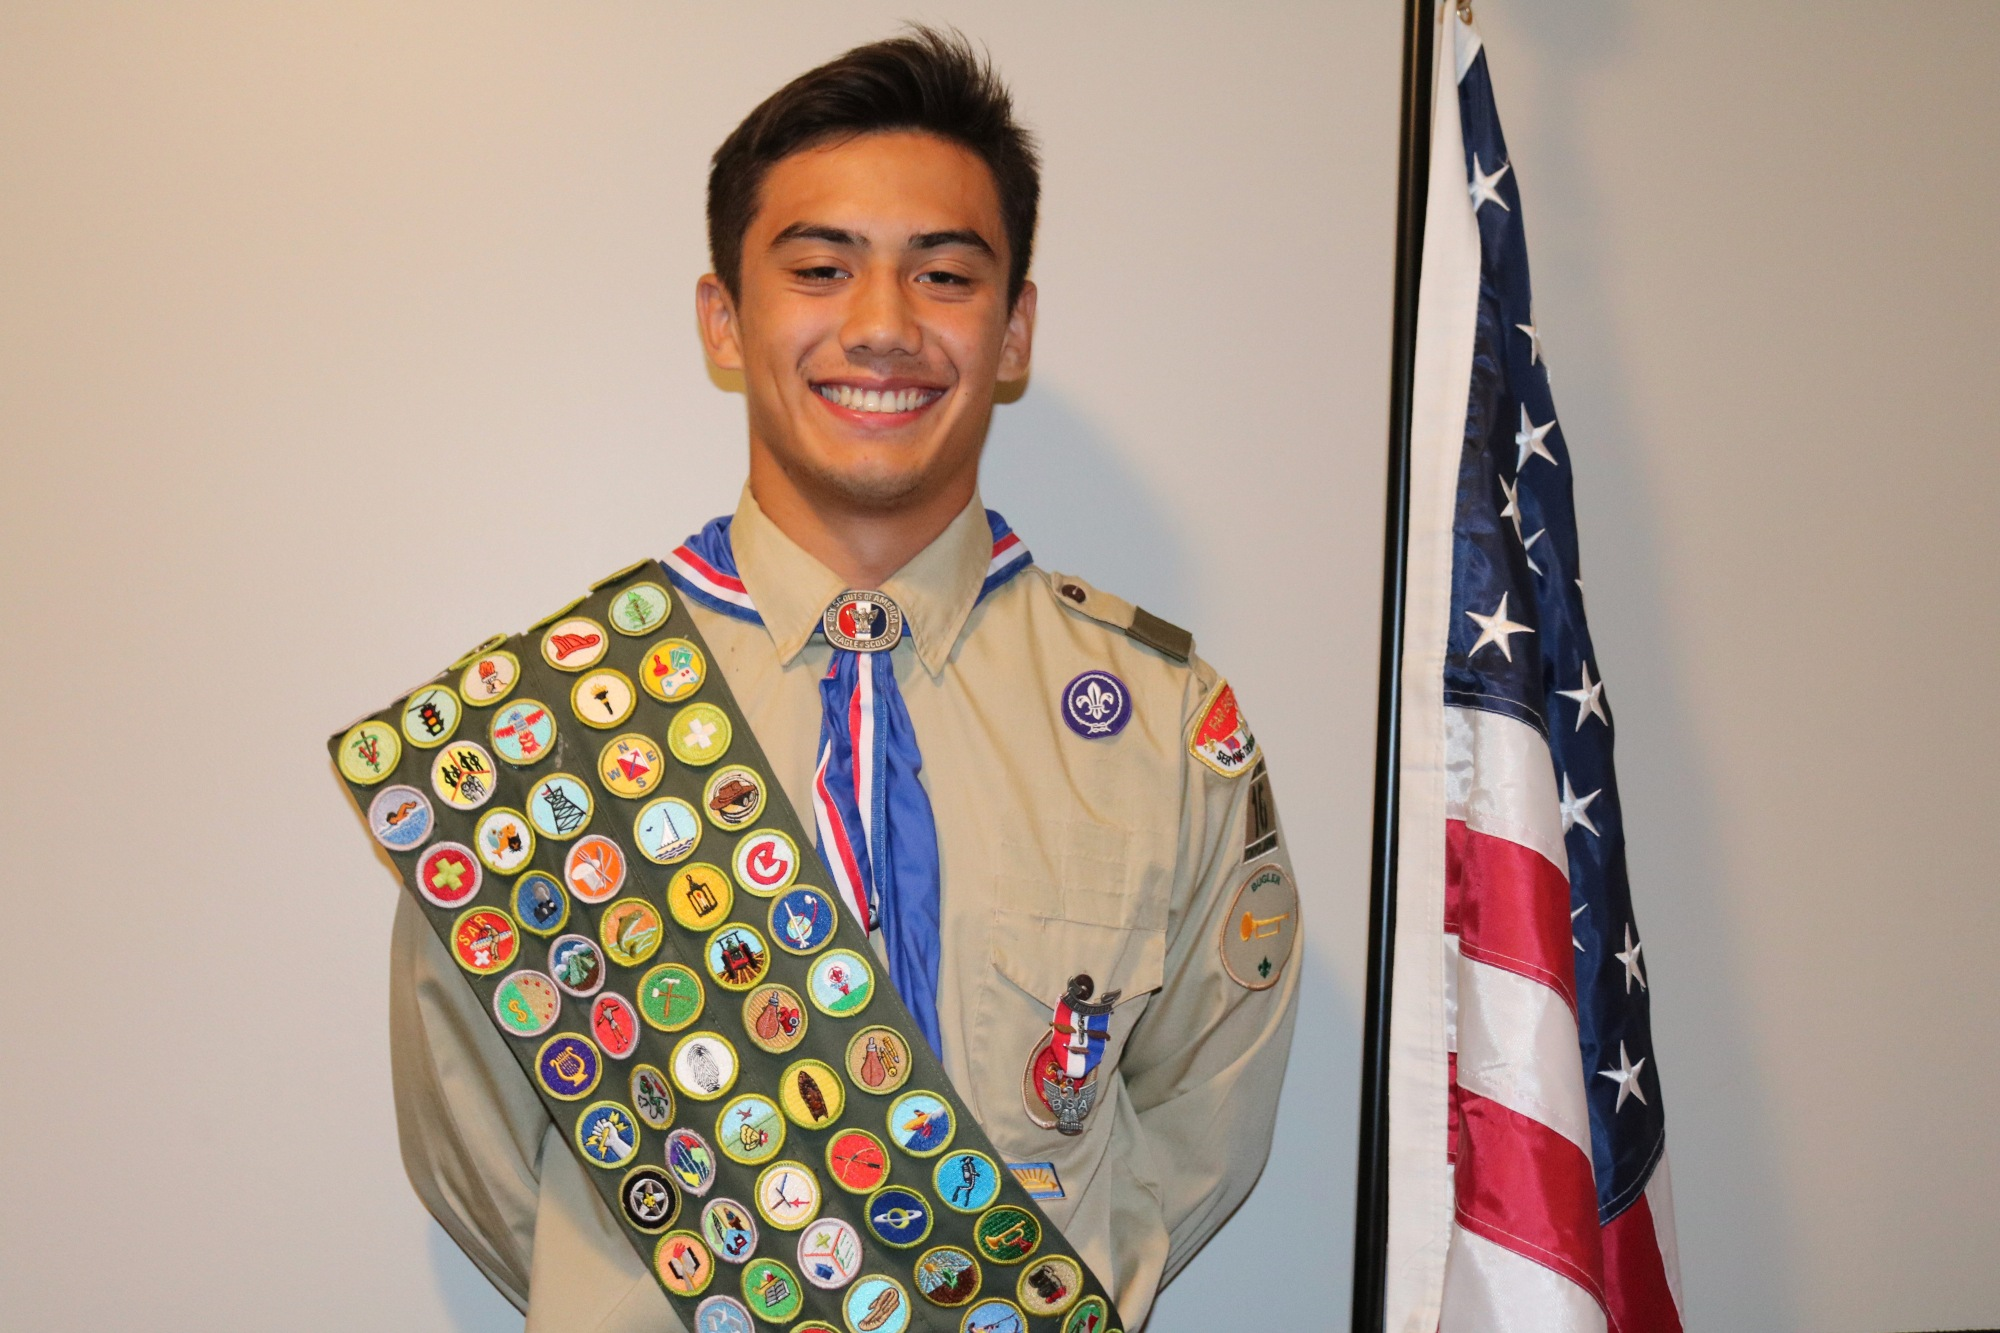 He has his merits: Eagle Scout Austin Koslow wears his full complement of 137 merit badges. | MARGARET GOFF